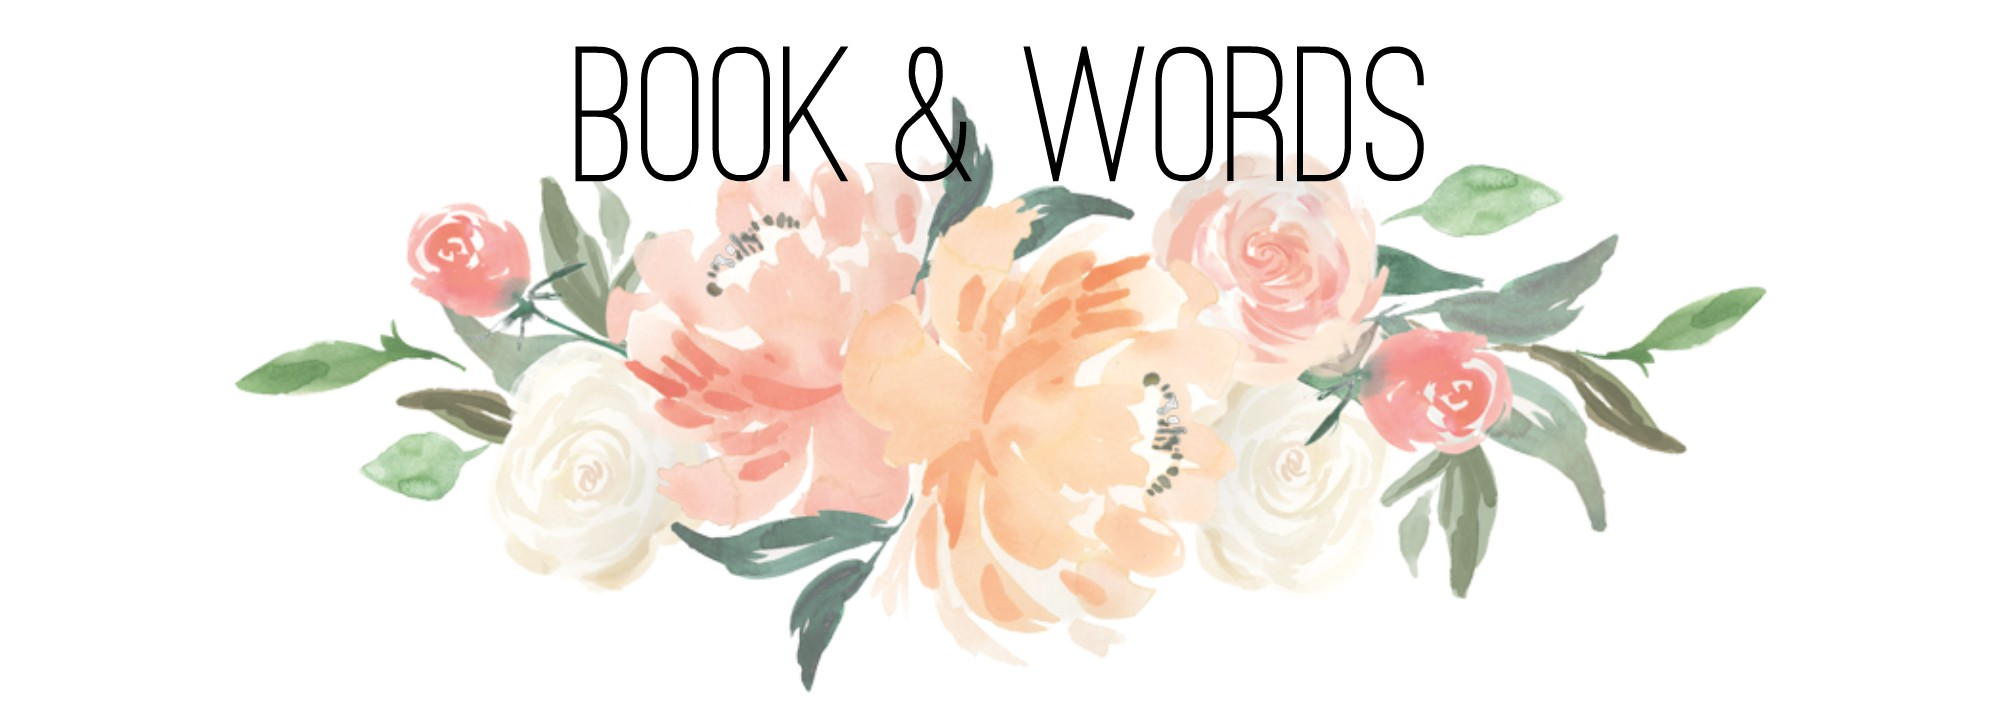 bookandwords